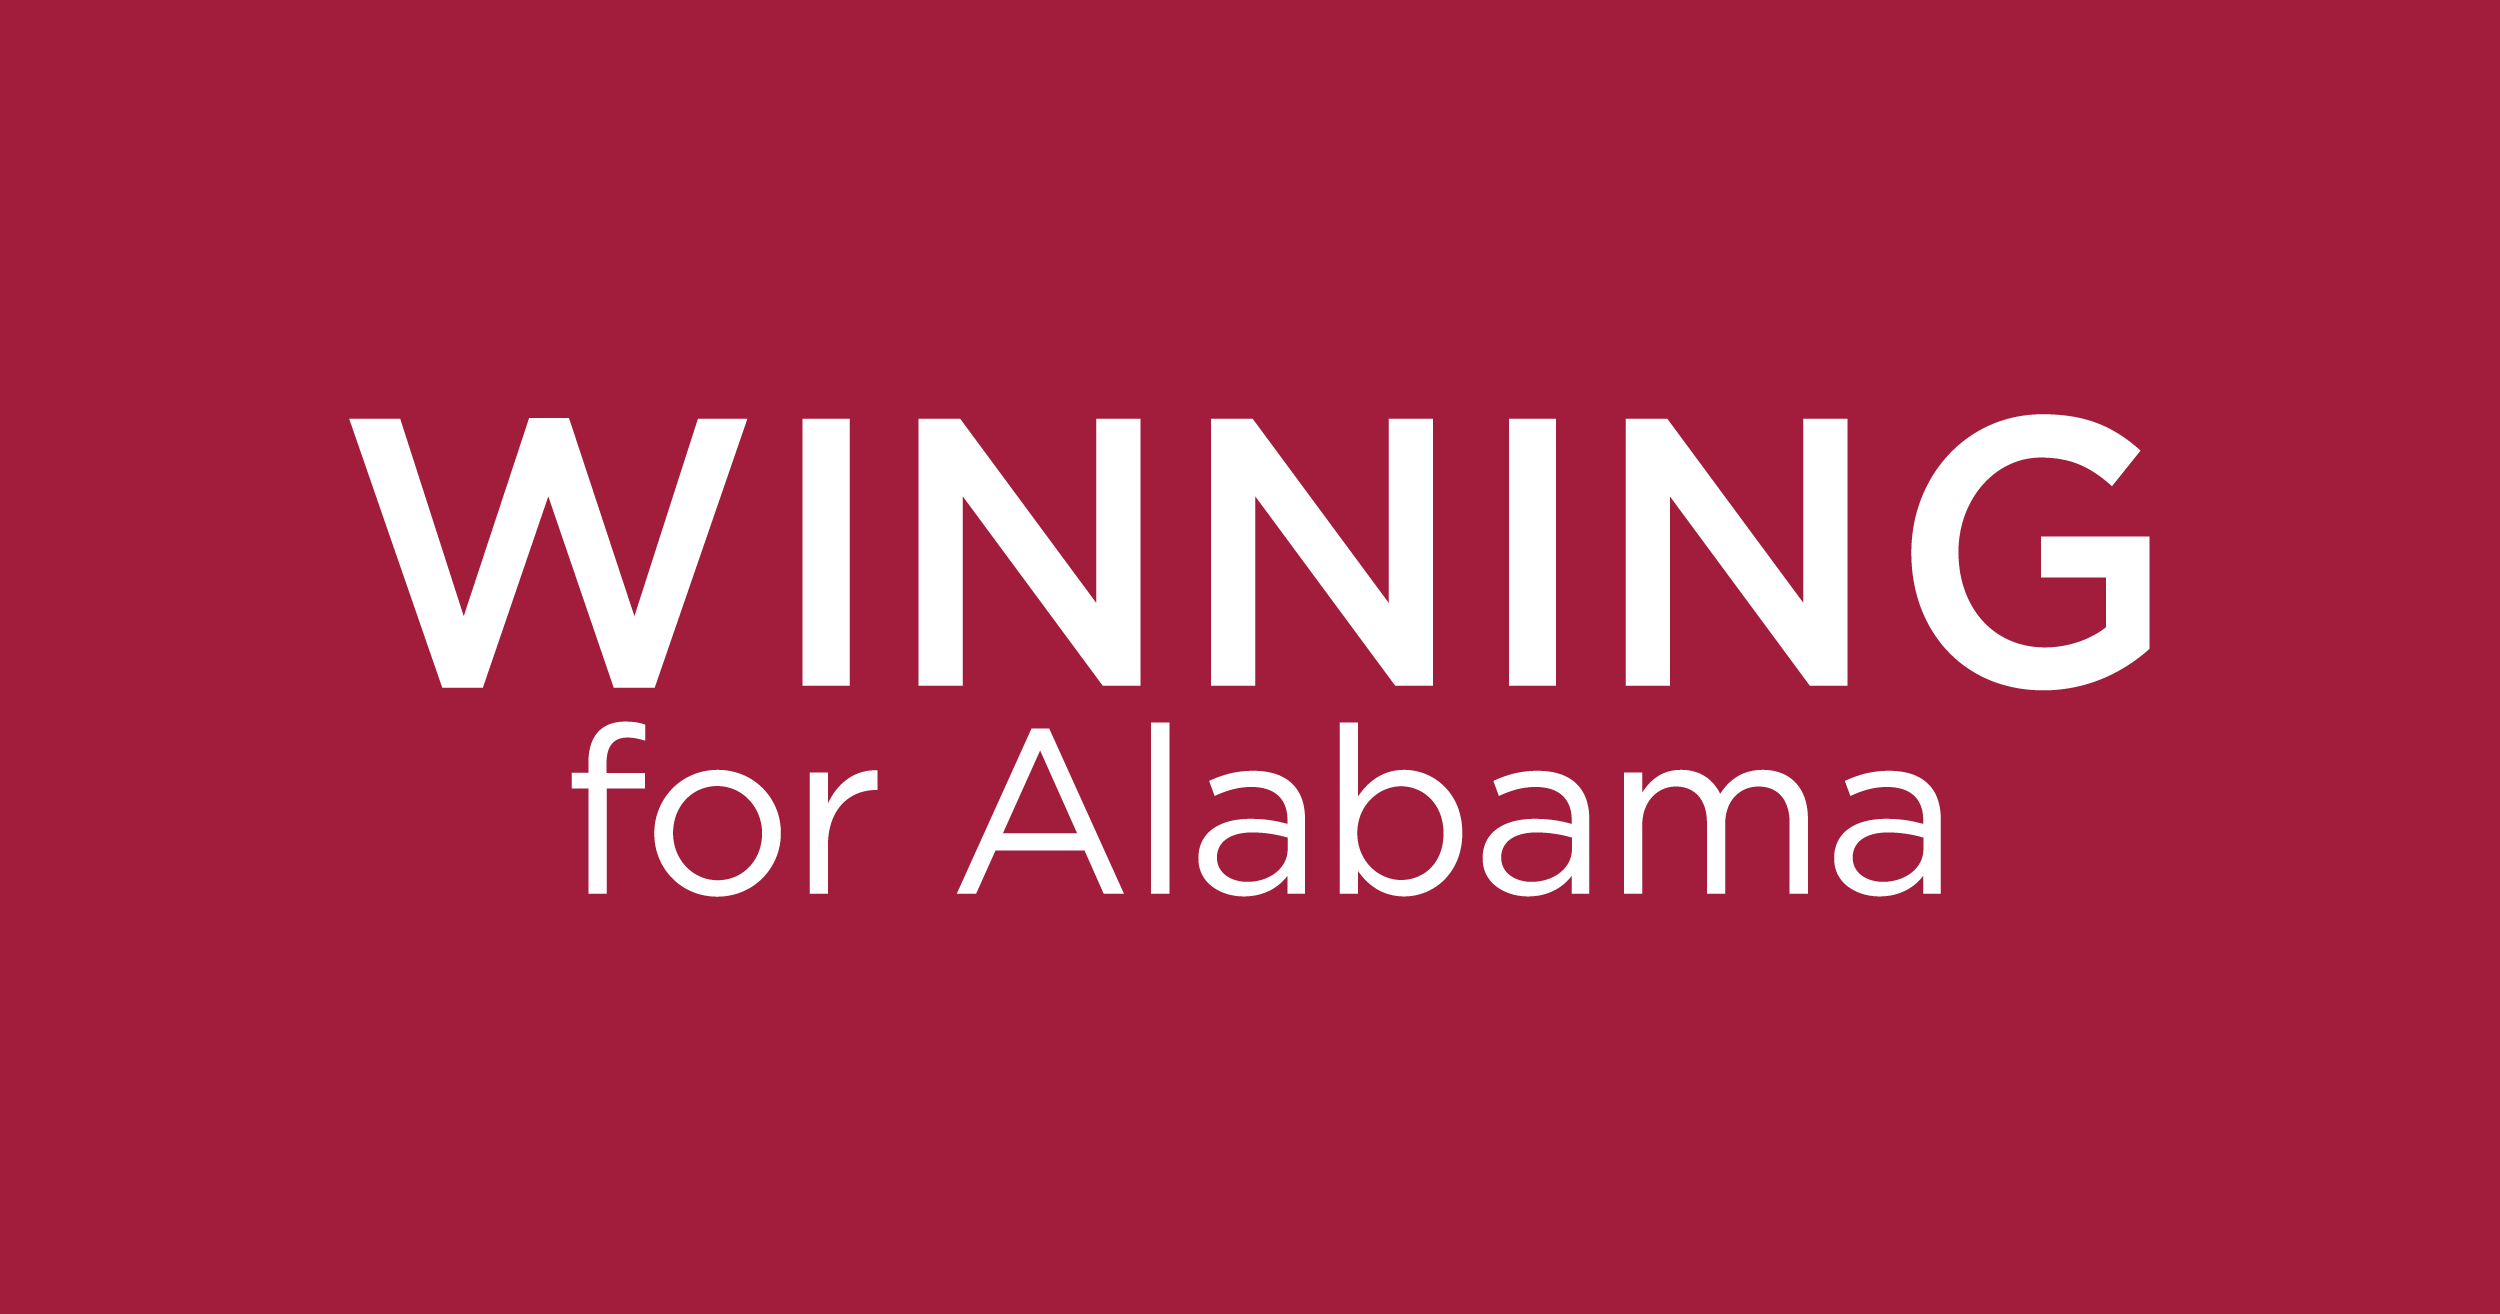 Winning for Alabama